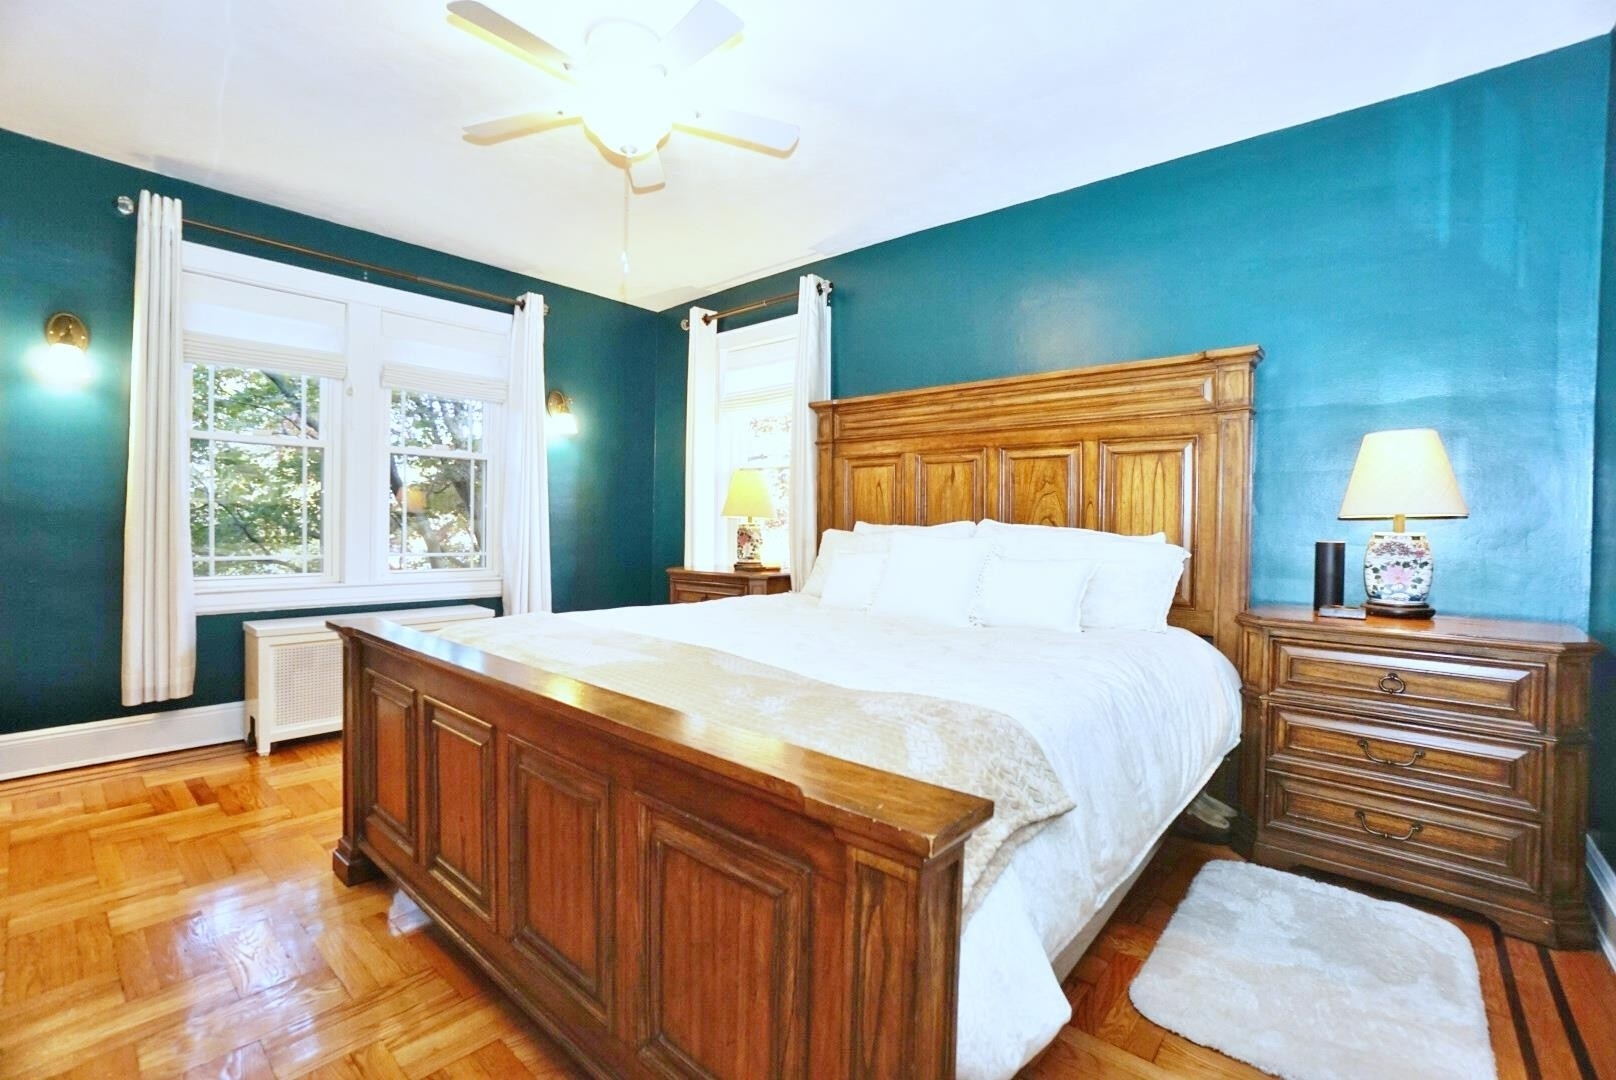 15. Single Family Townhouse for Sale at 1684 RYDER ST , TOWNHOUSE Marine Park, Brooklyn, NY 11234